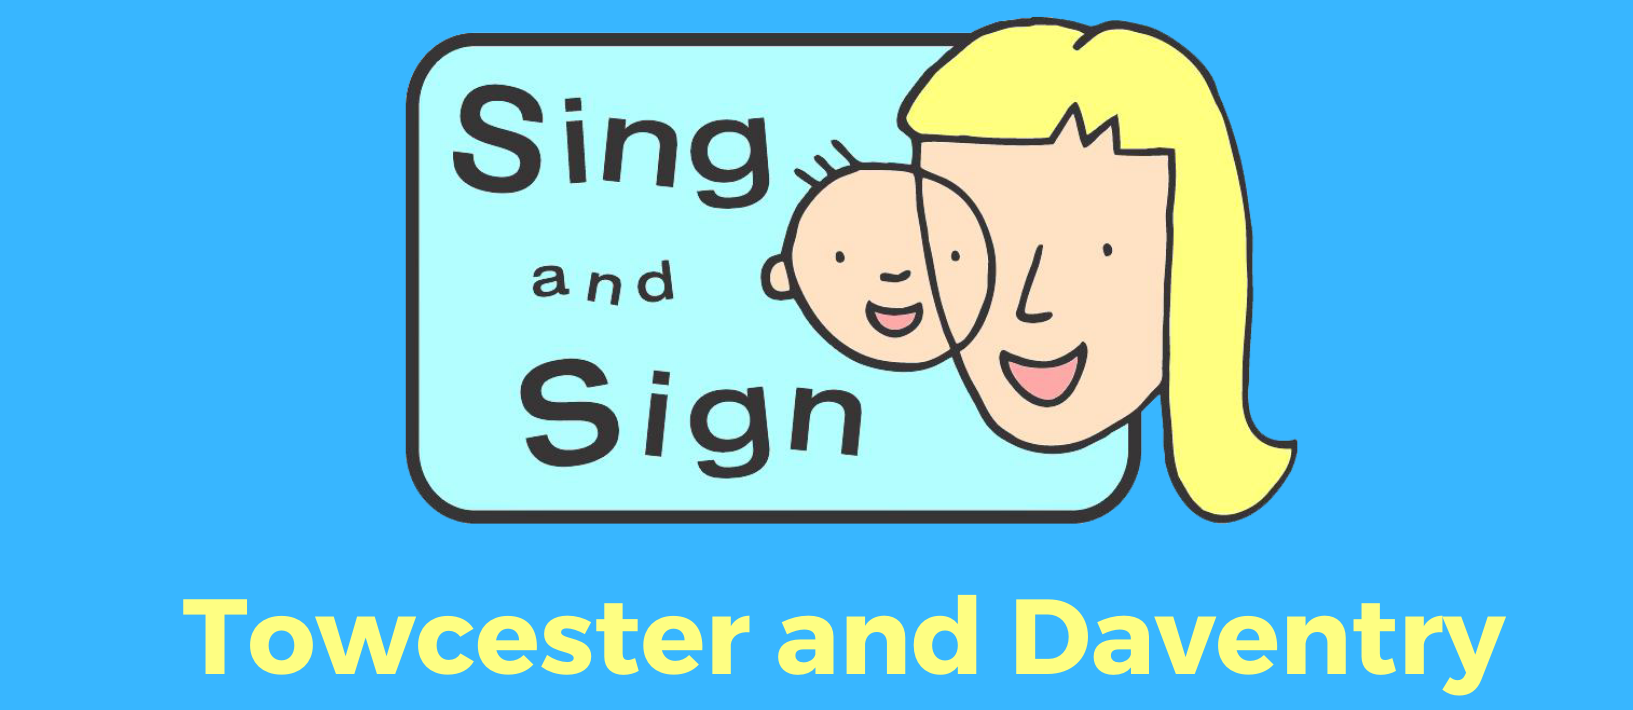 Sing and Sign - Towcester & Daventry's main image